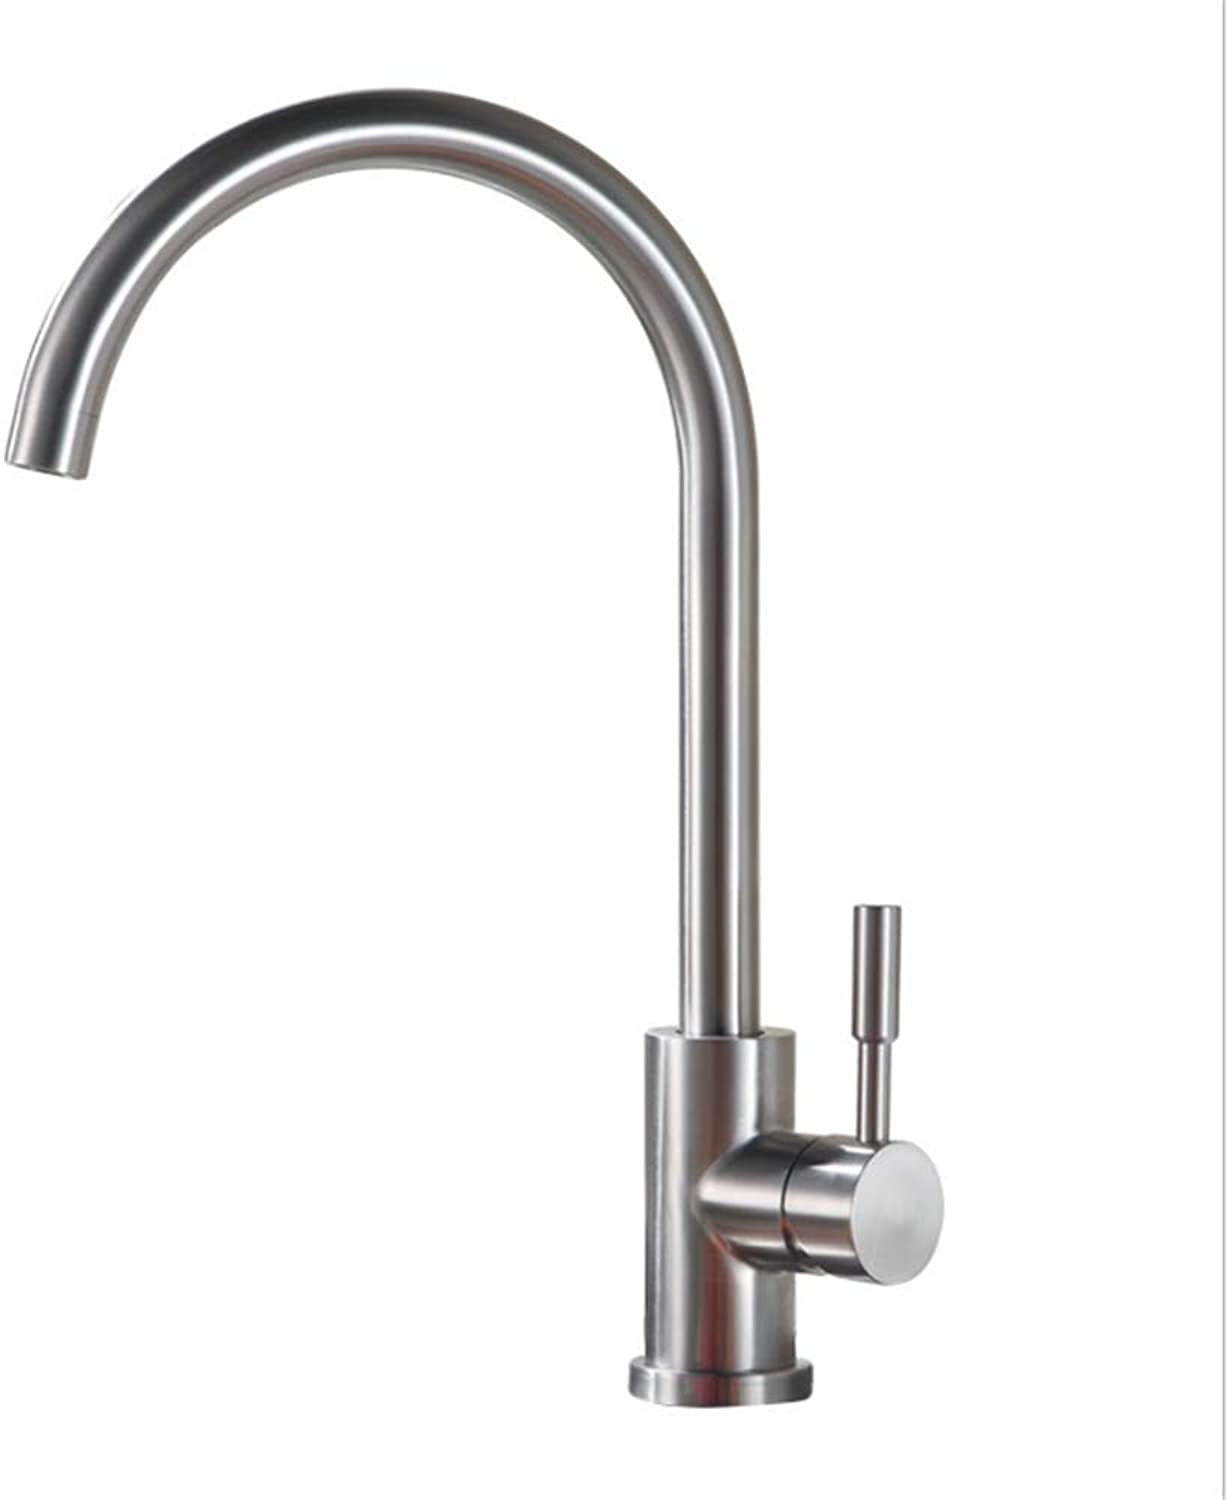 Kitchen Taps Faucet Modern Kitchen Sink Taps Stainless Steel304 Stainless Steel Faucet Kitchen Faucet Cold and Hot Water Mixing Valve redary Sink Faucet Vegetable Basin